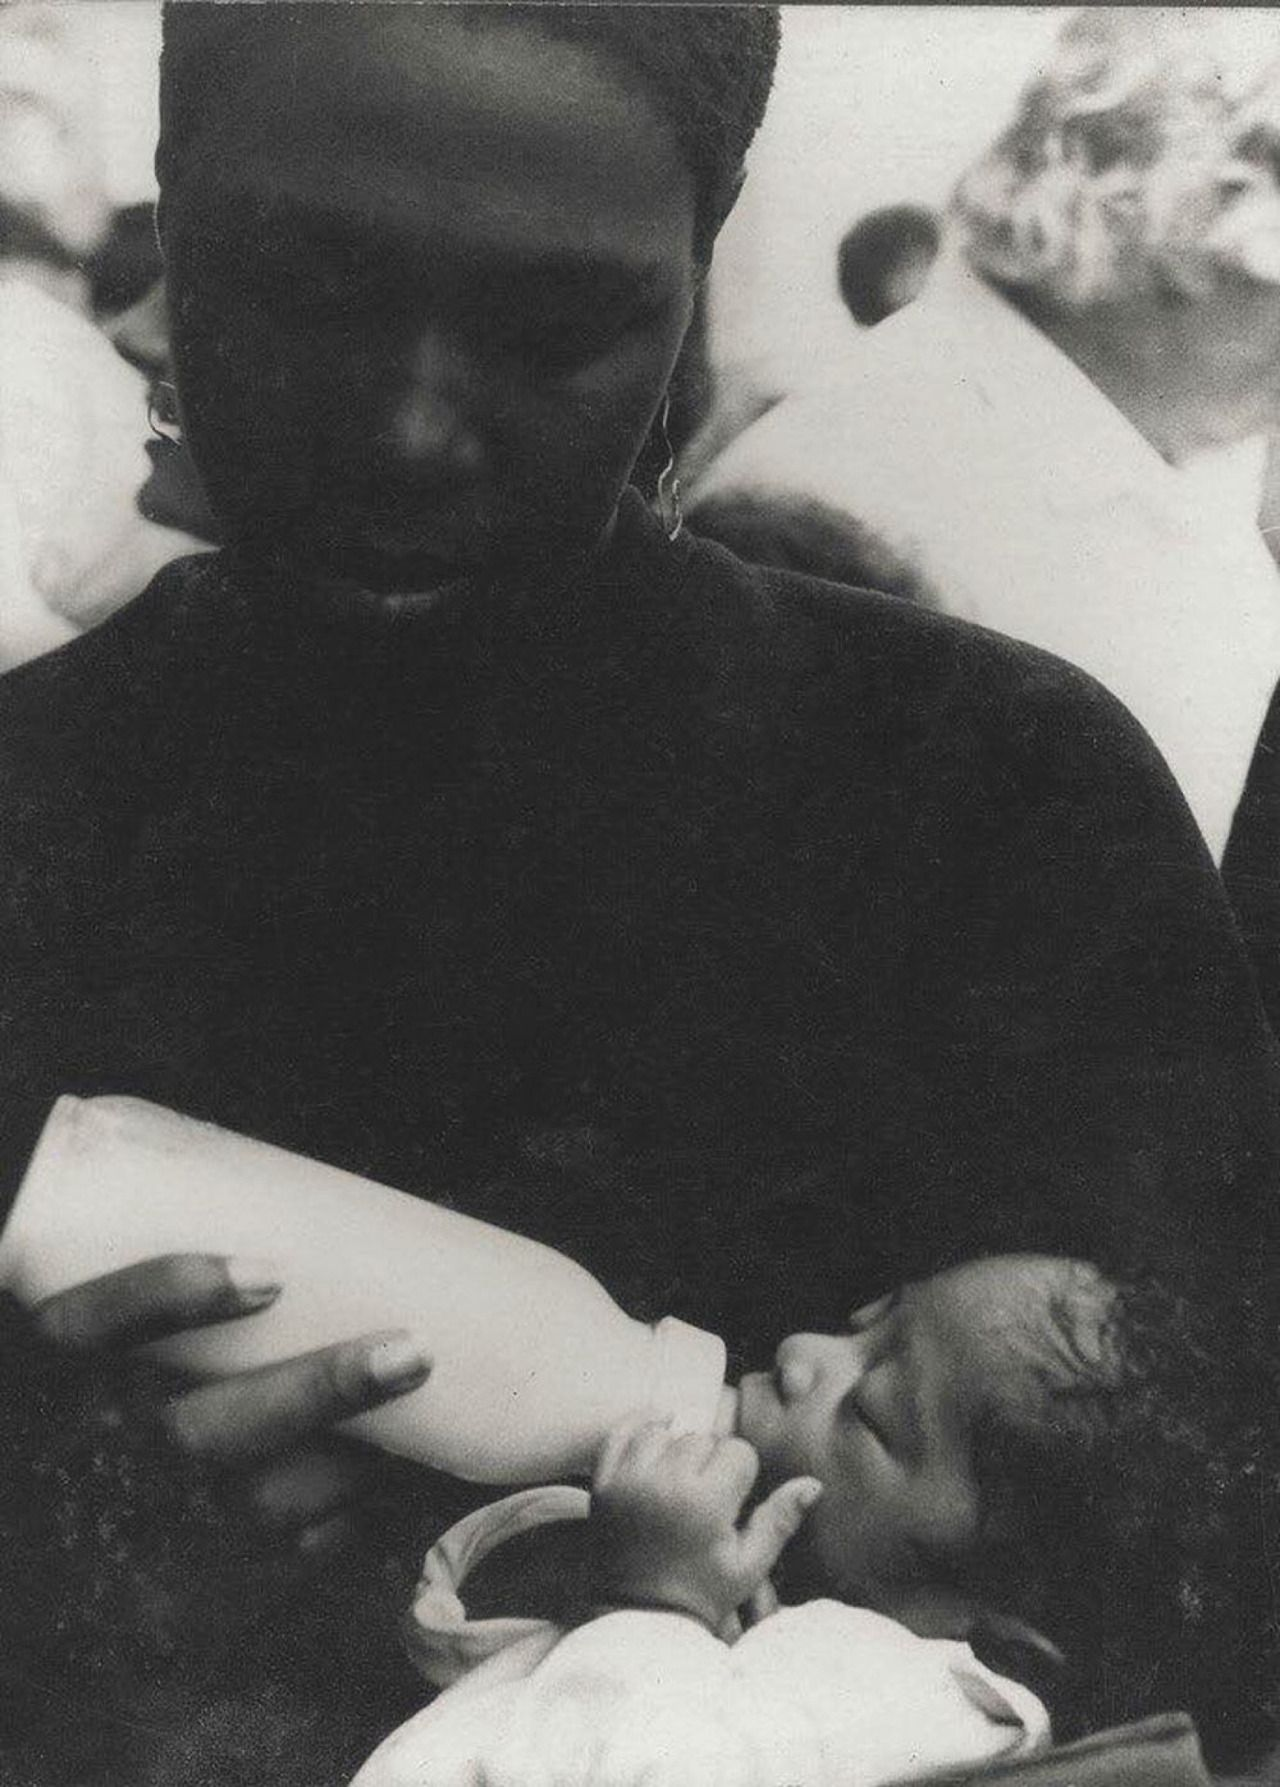 samuelernesto afeni shakur baby tupac after panther trial samuelernesto afeni shakur baby tupac after panther 21 trial photography by barbara